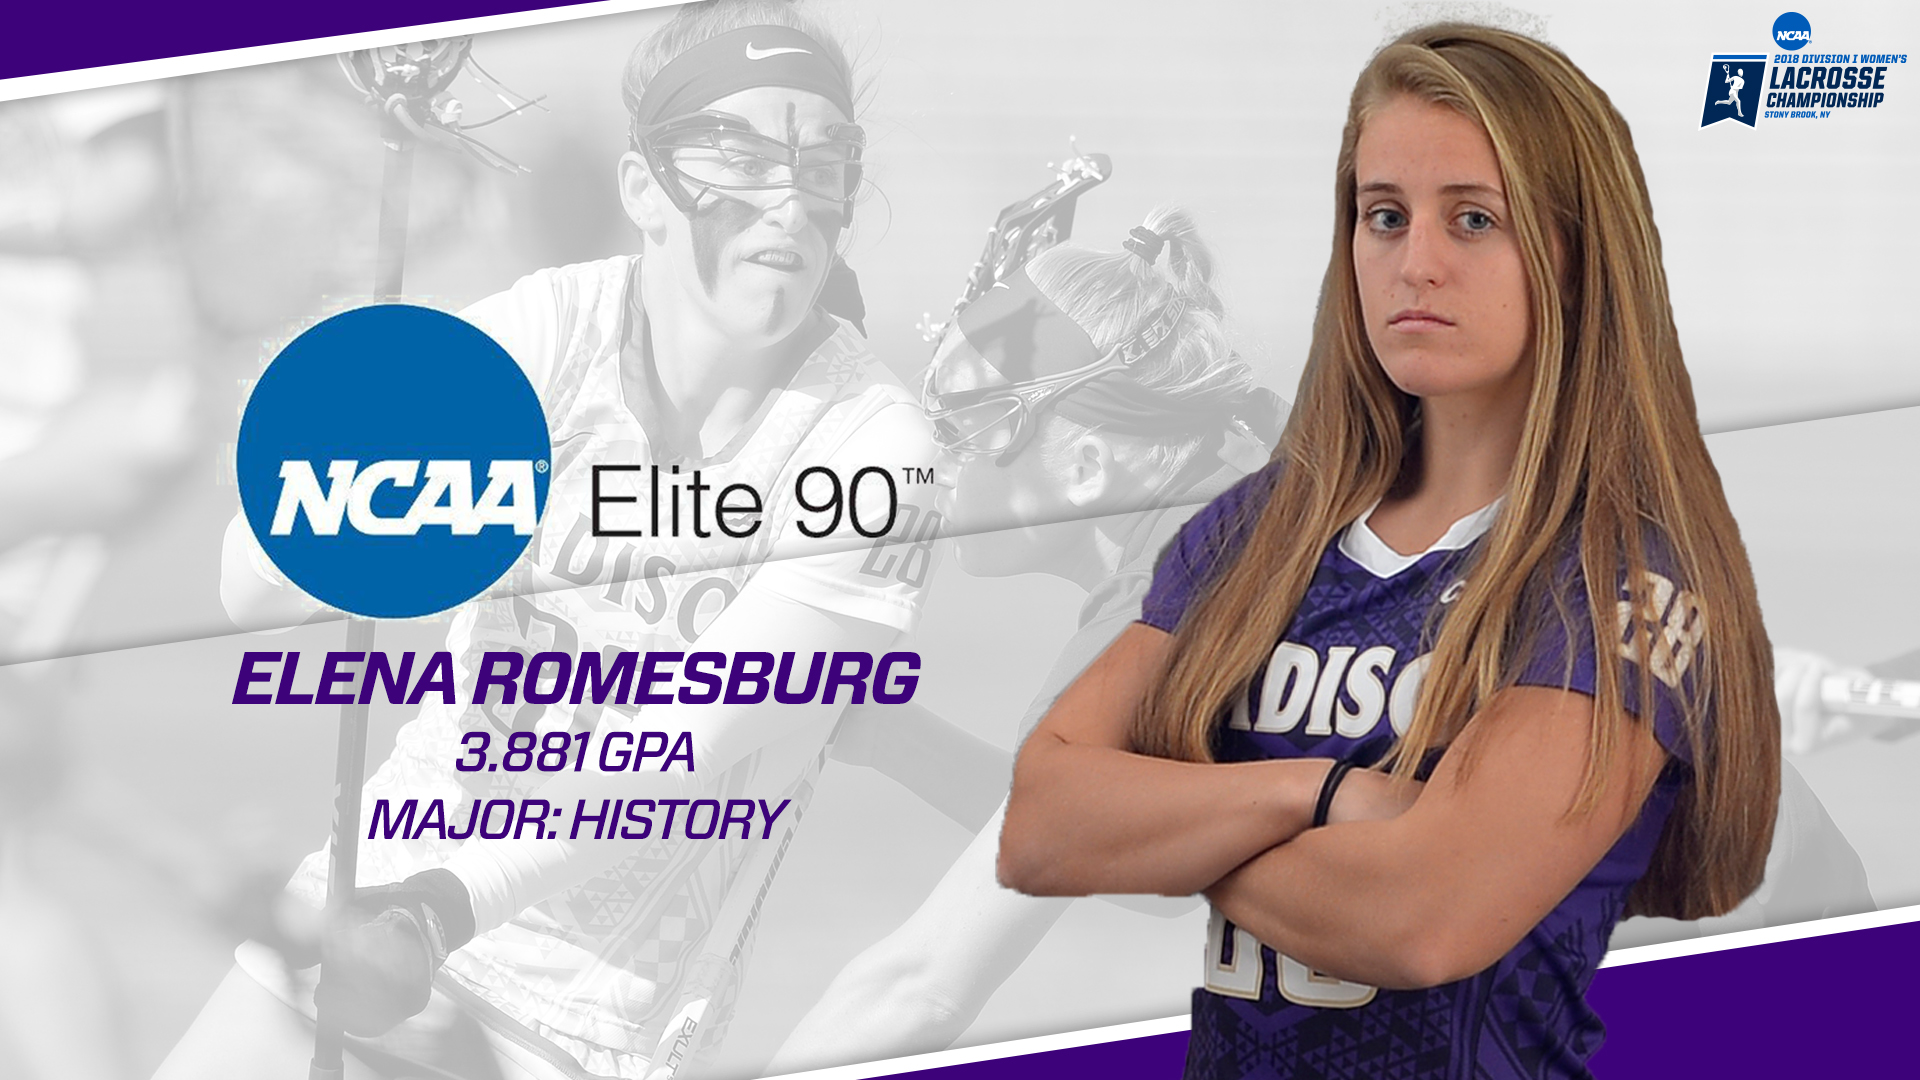 Women's Lacrosse: Romesburg Wins NCAA Elite 90 Award at Championship Banquet